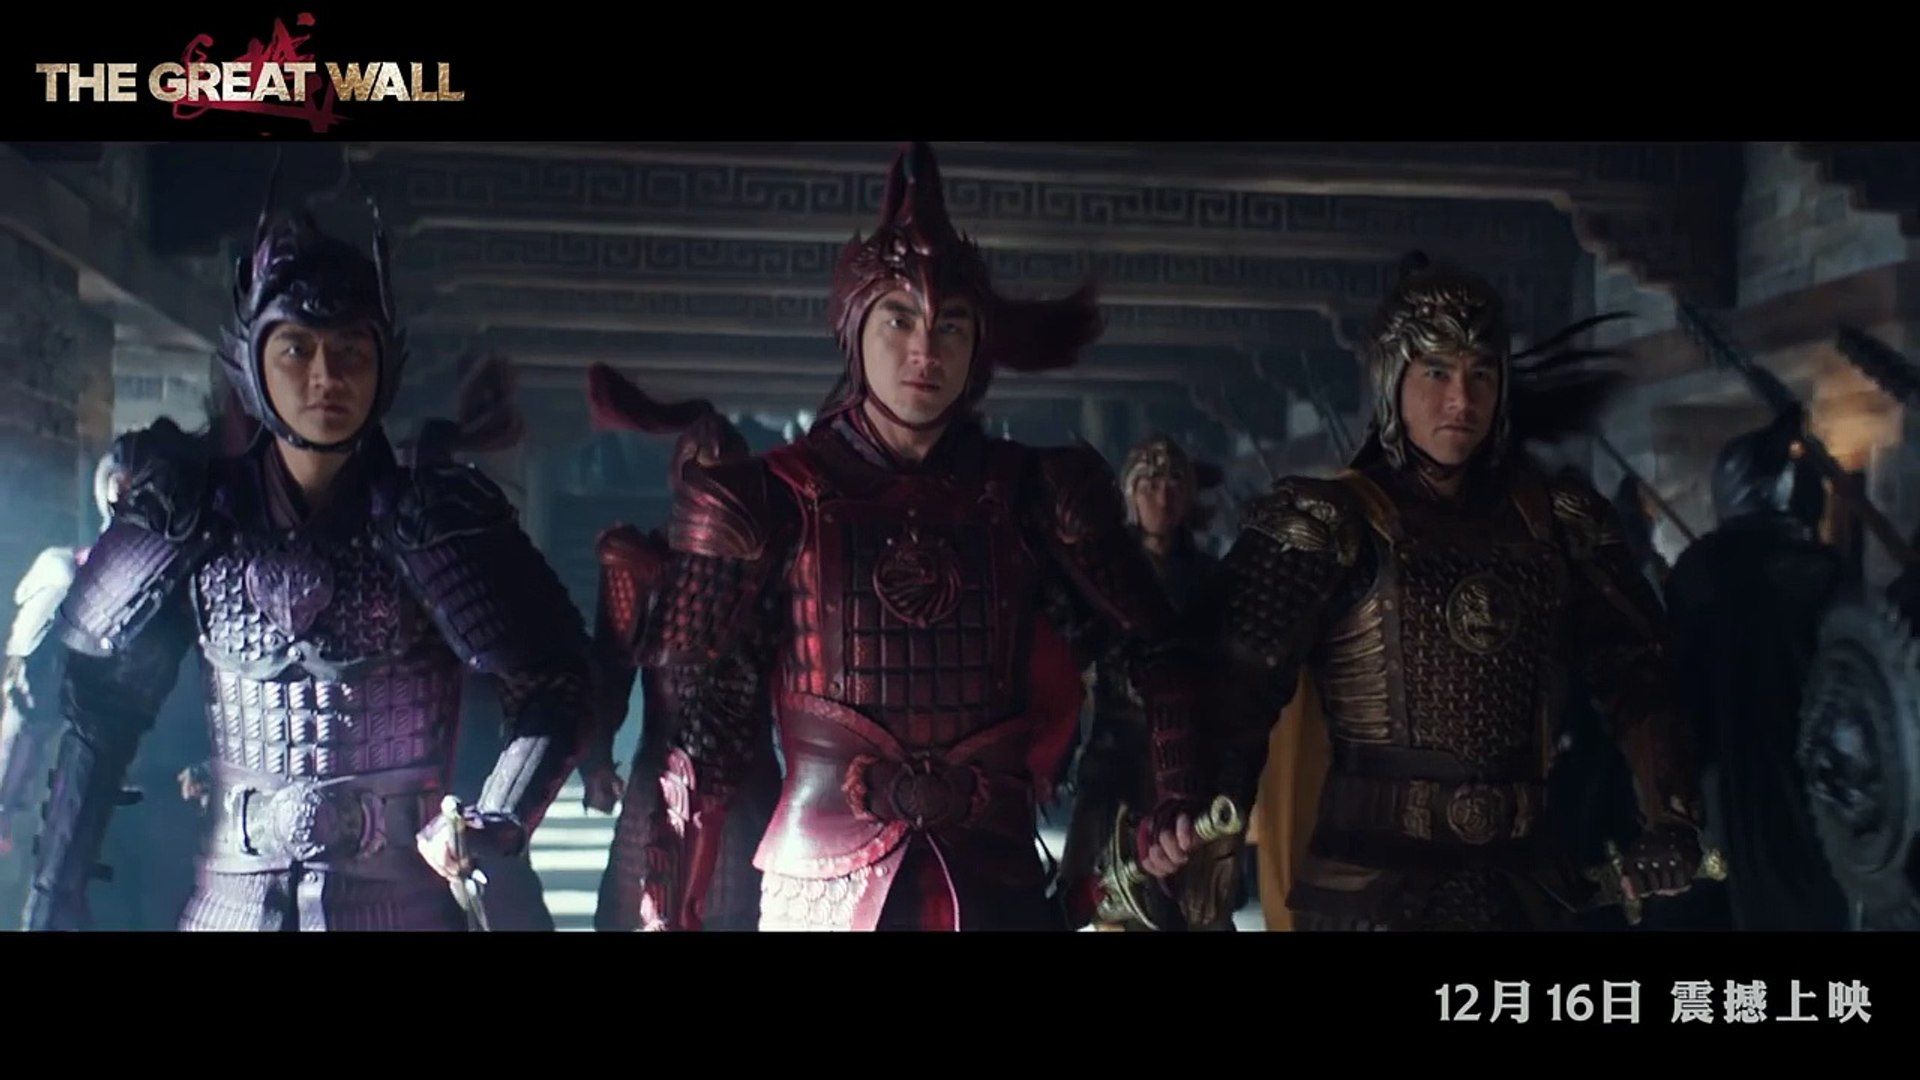 The Great Wall Gets A 9 Min Chinese Trailer 張藝謀 長城 超長版